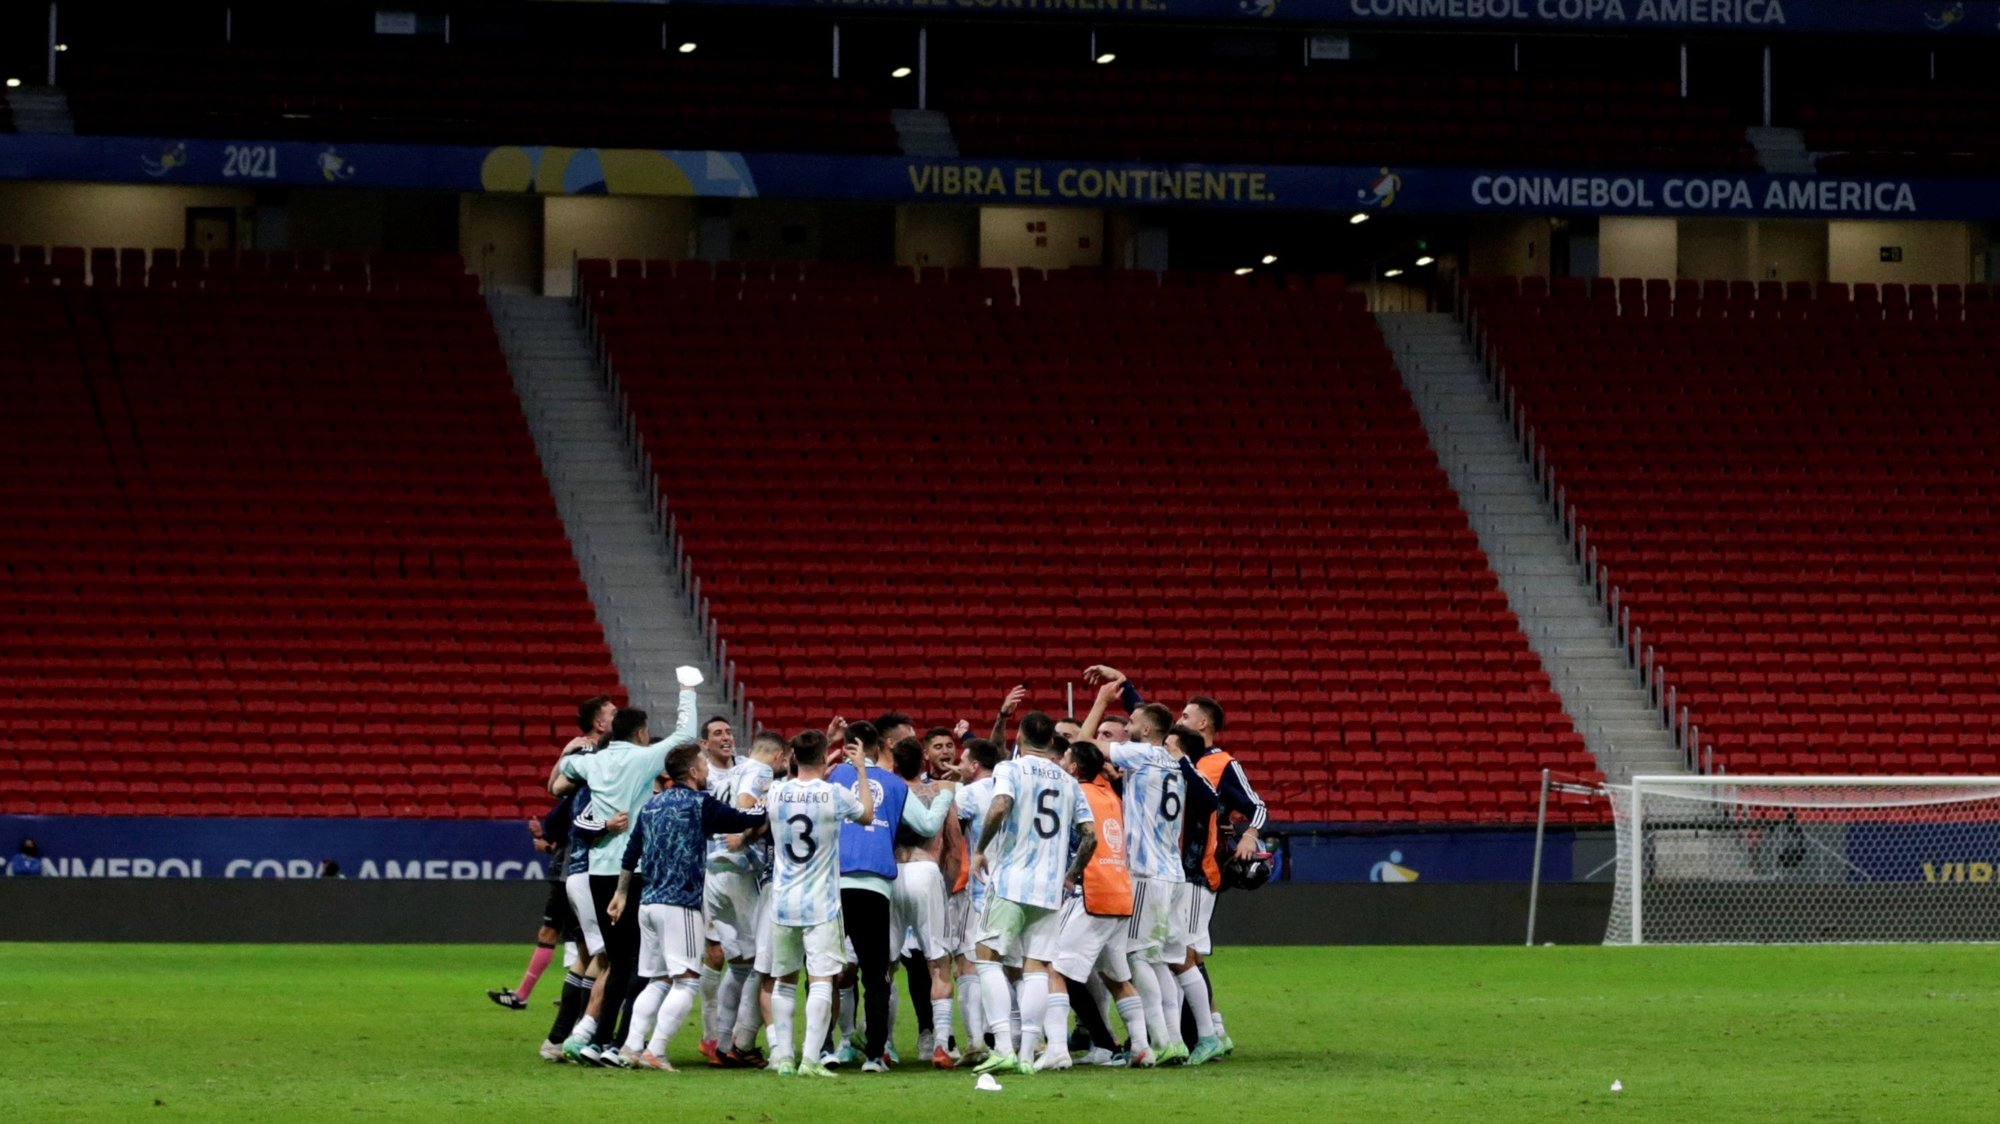 epa09327677 Argentina's players celebrate after defeating Colombia in the penalty shootout, at the conclusion of the Copa America semifinal soccer match between Argentina and Colombia at Mane Garrincha stadium in Brasilia, Brazil, 06 July 2021.  EPA/FERNANDO BIZERRA